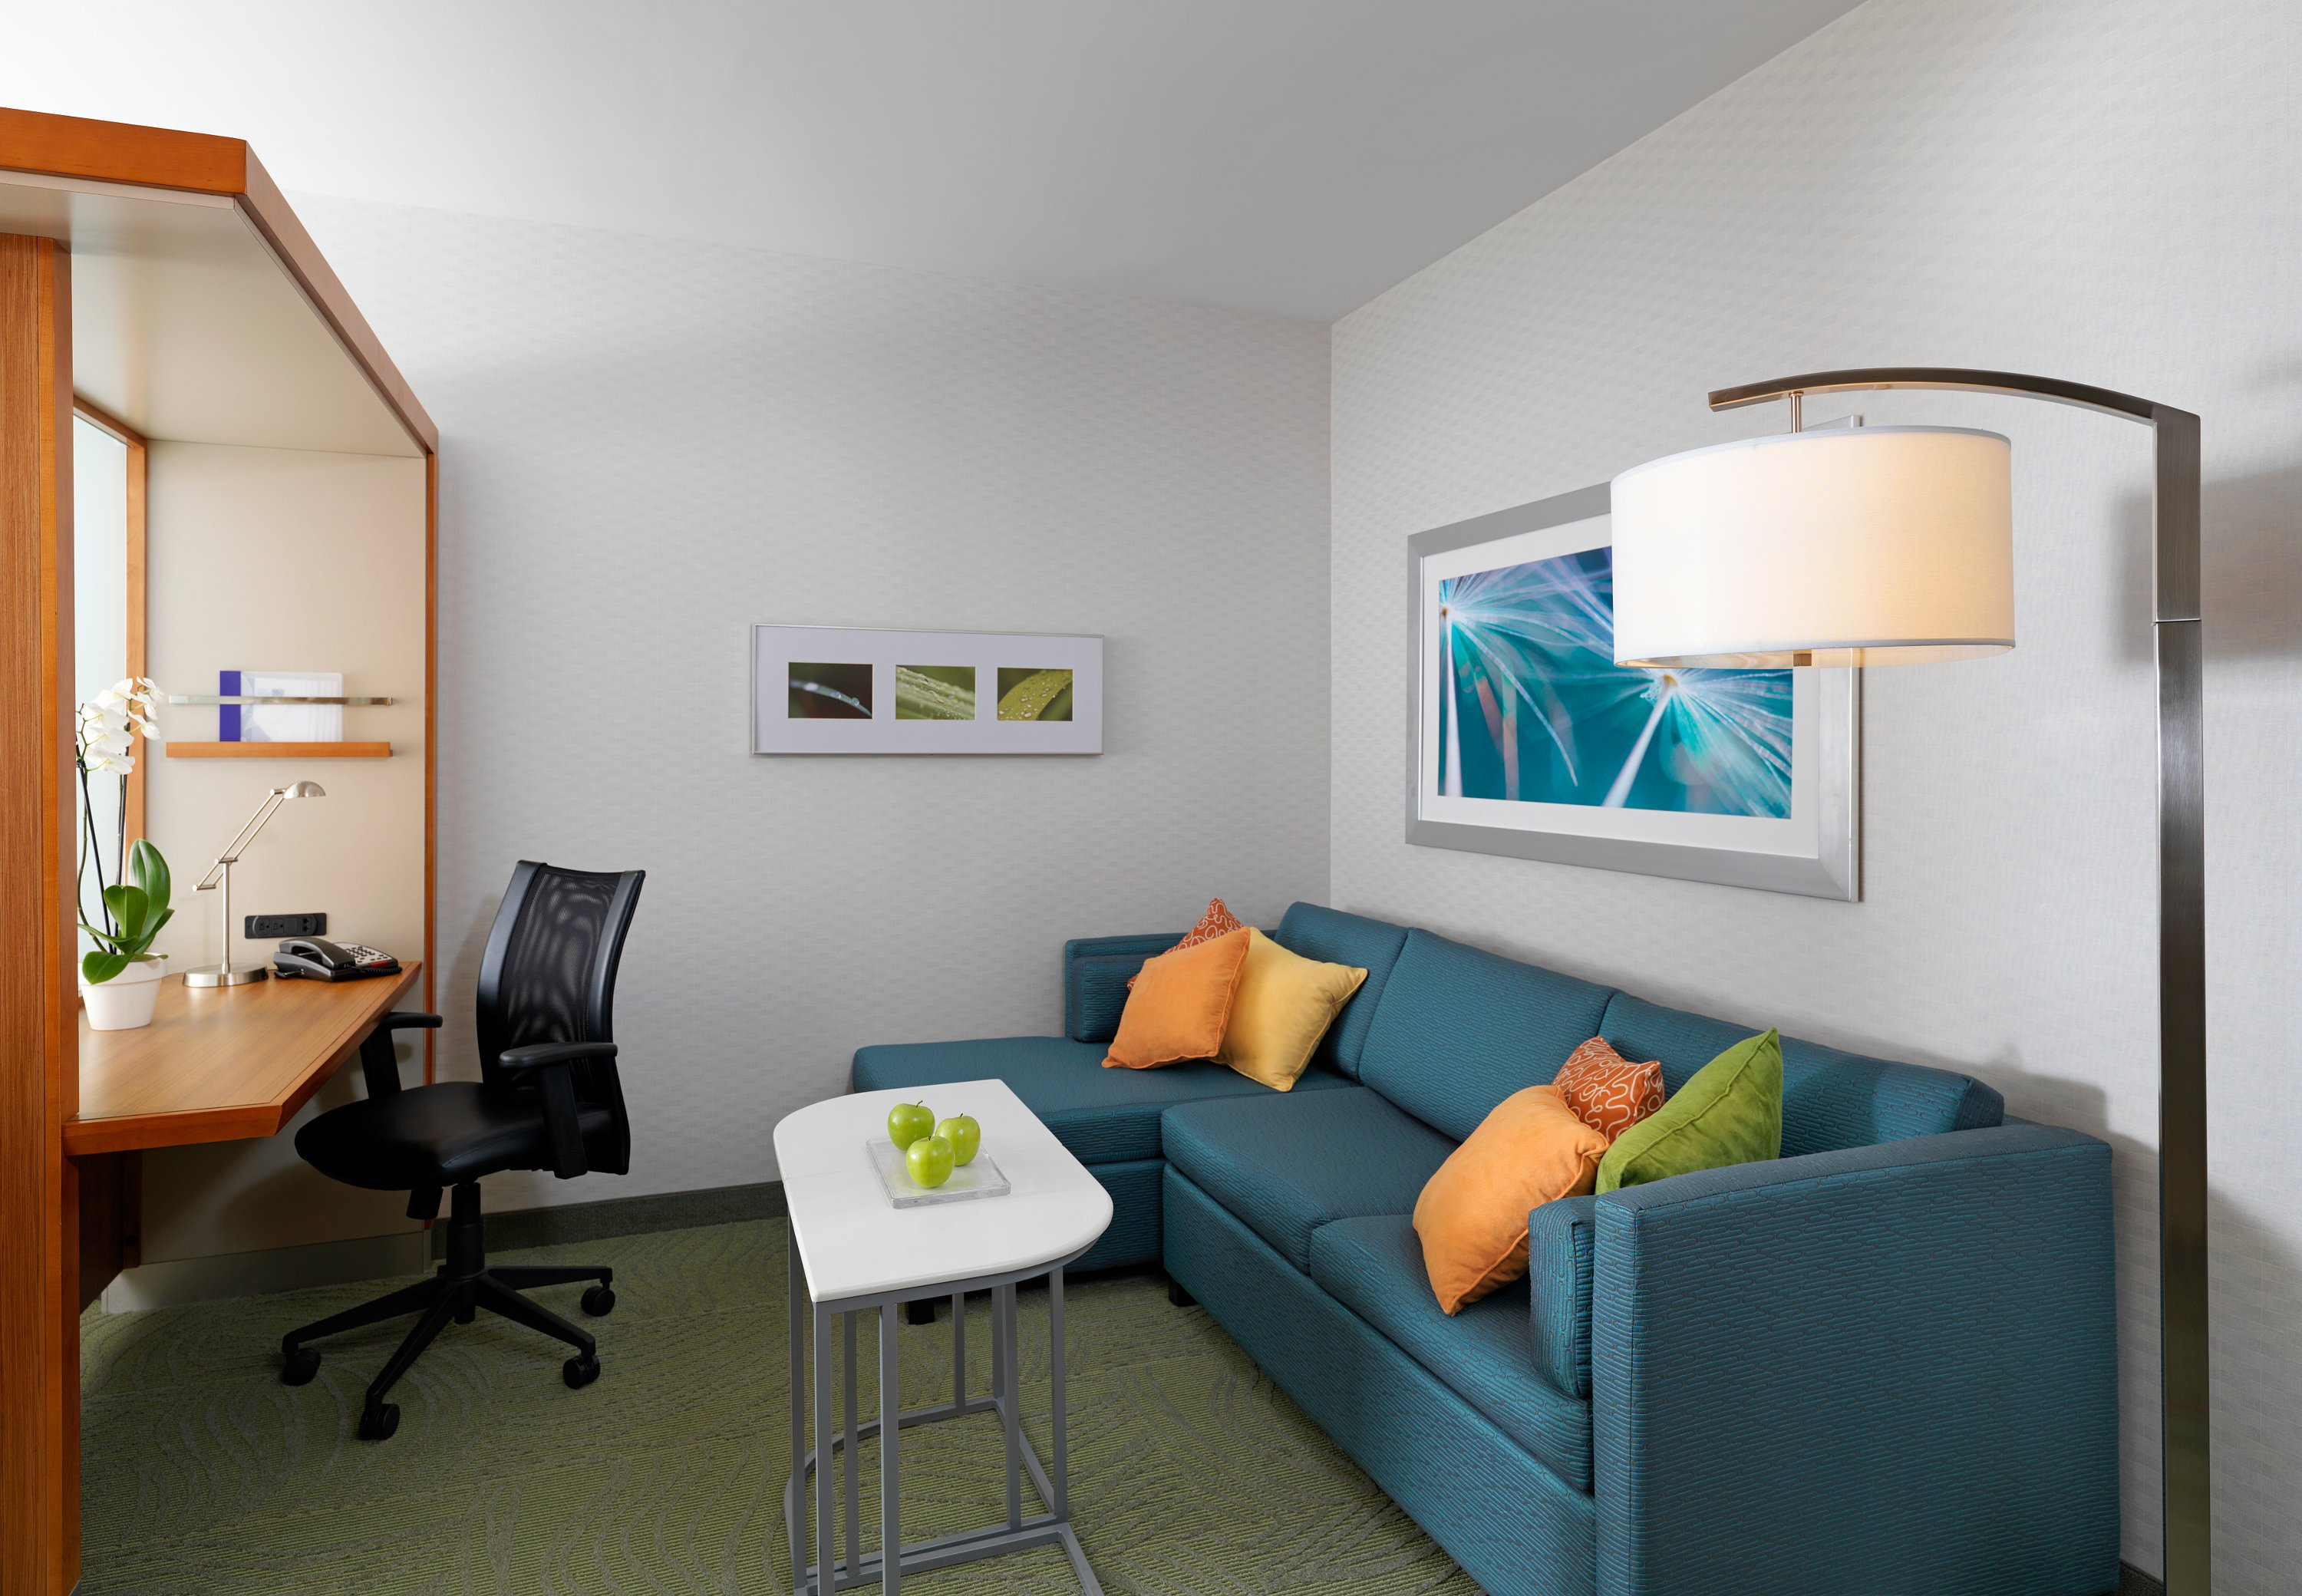 SpringHill Suites by Marriott Denver Tech Center image 6